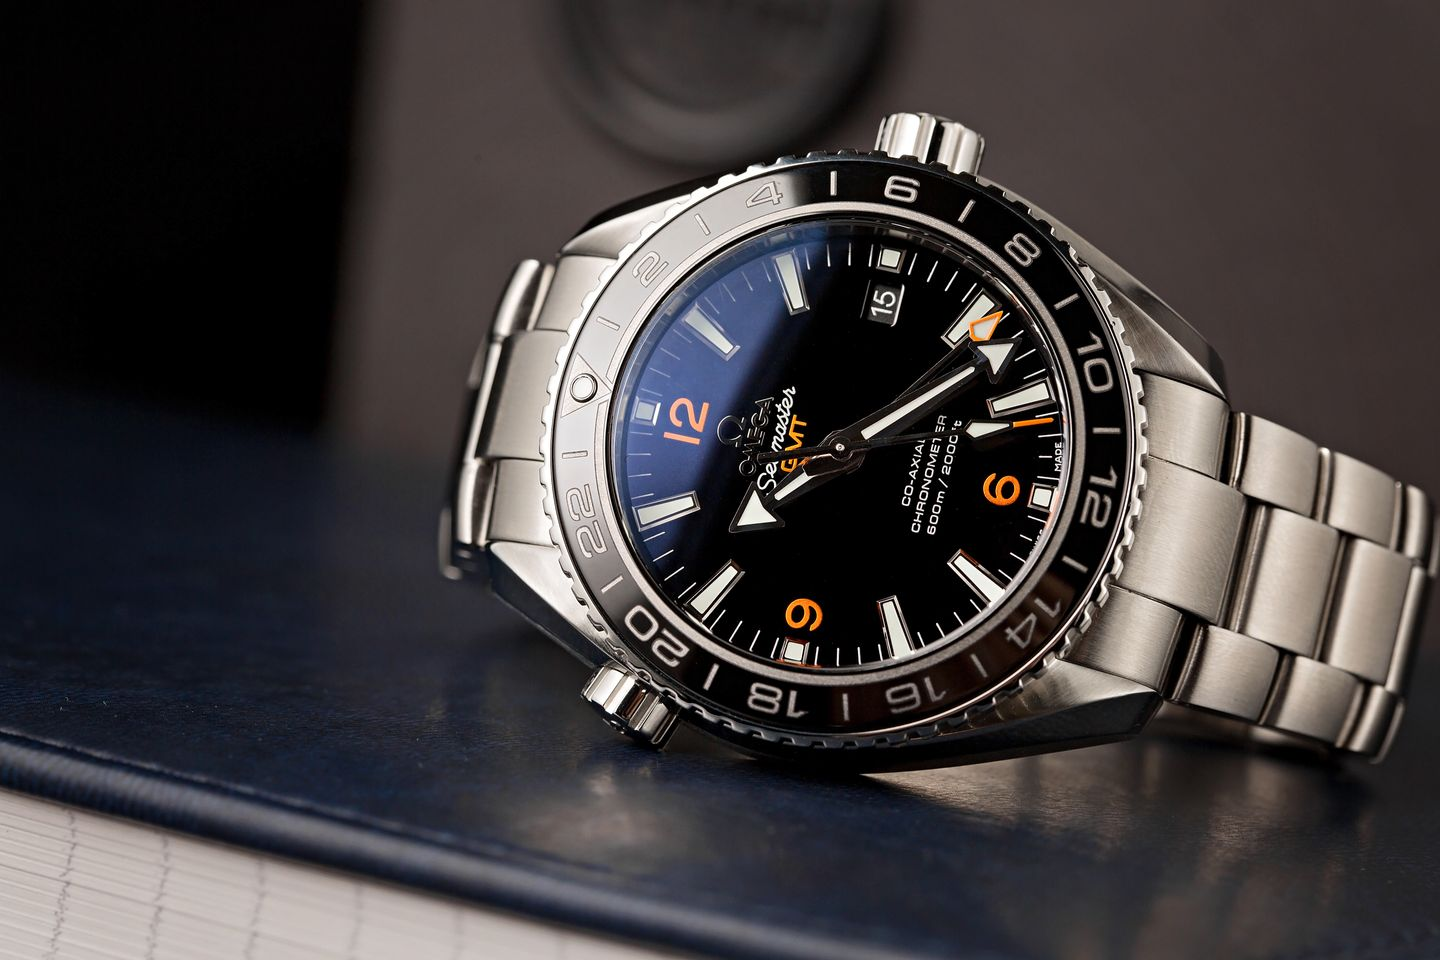 Omega Seamaster Planet Ocean GMT - understand the collection